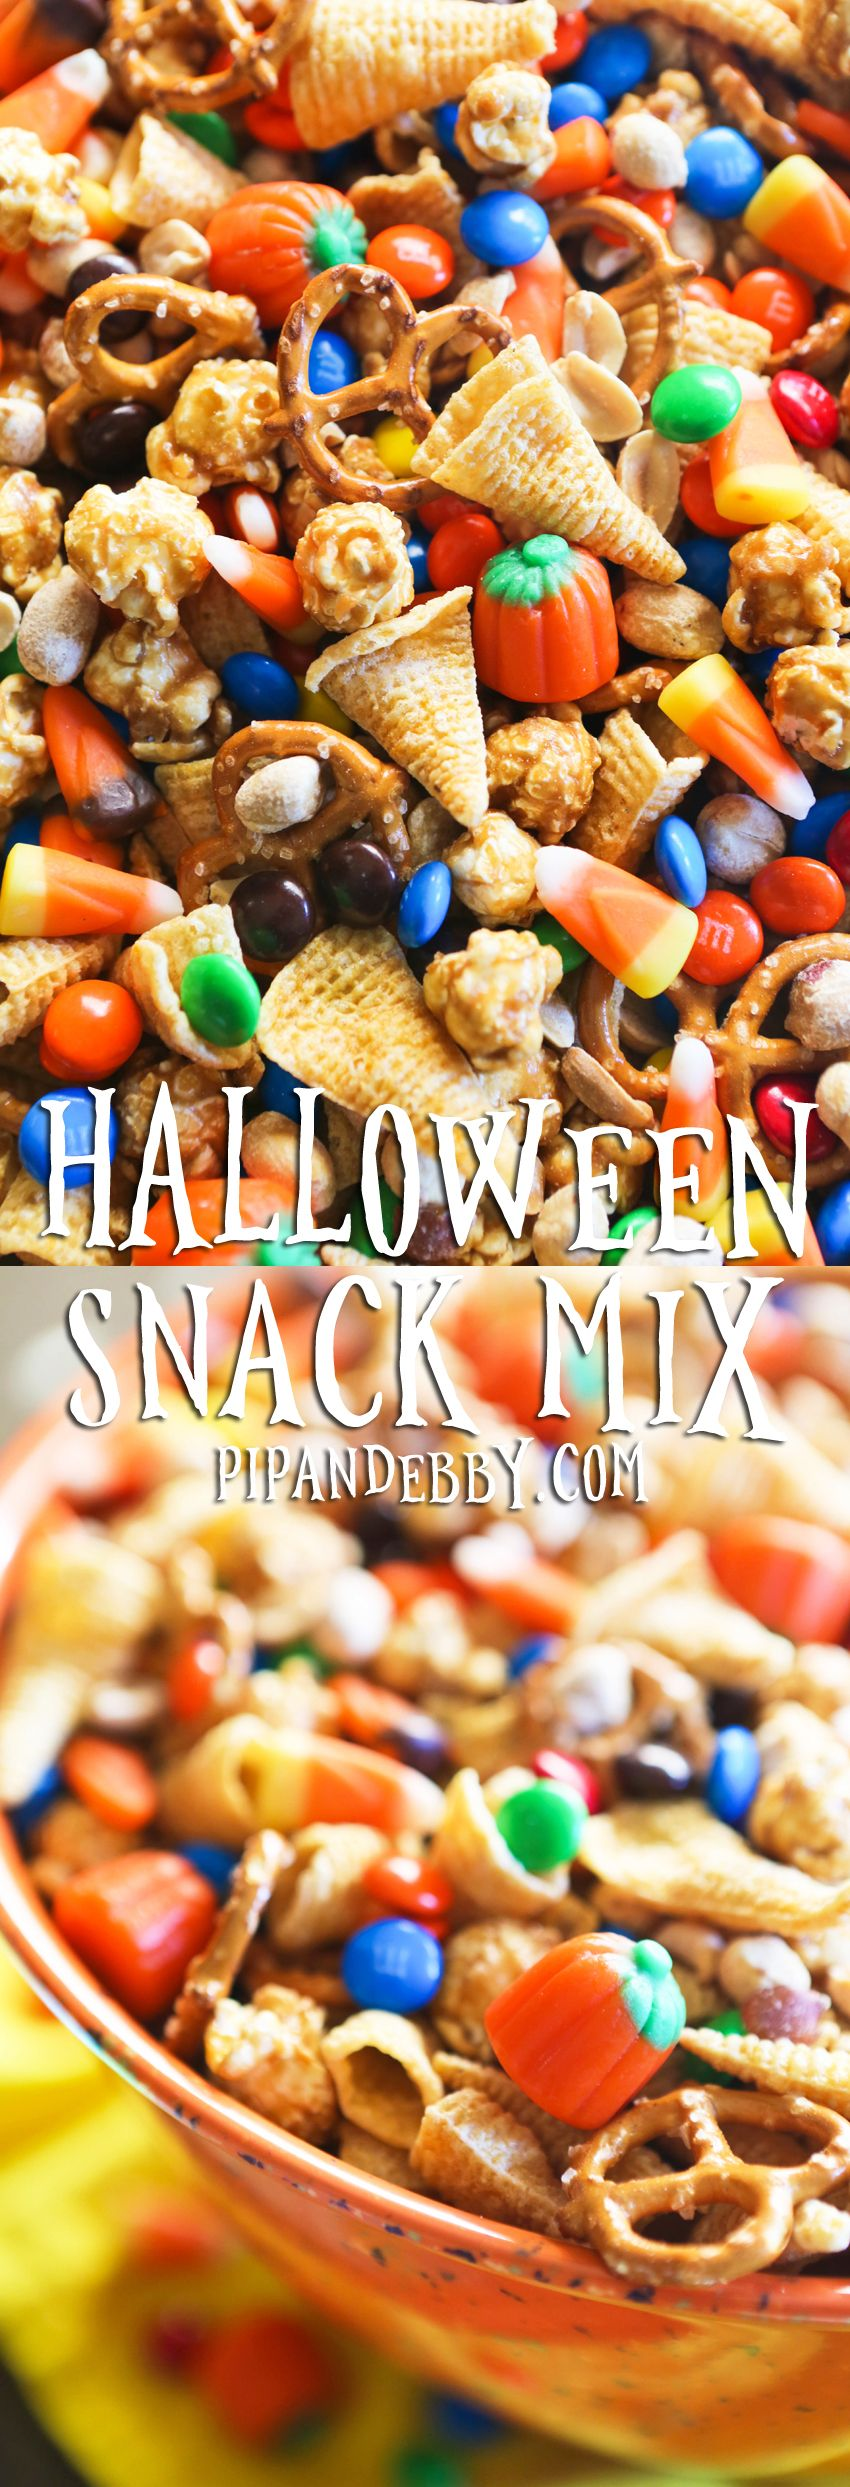 Halloween Sweet and Salty Snack Mix Recipe